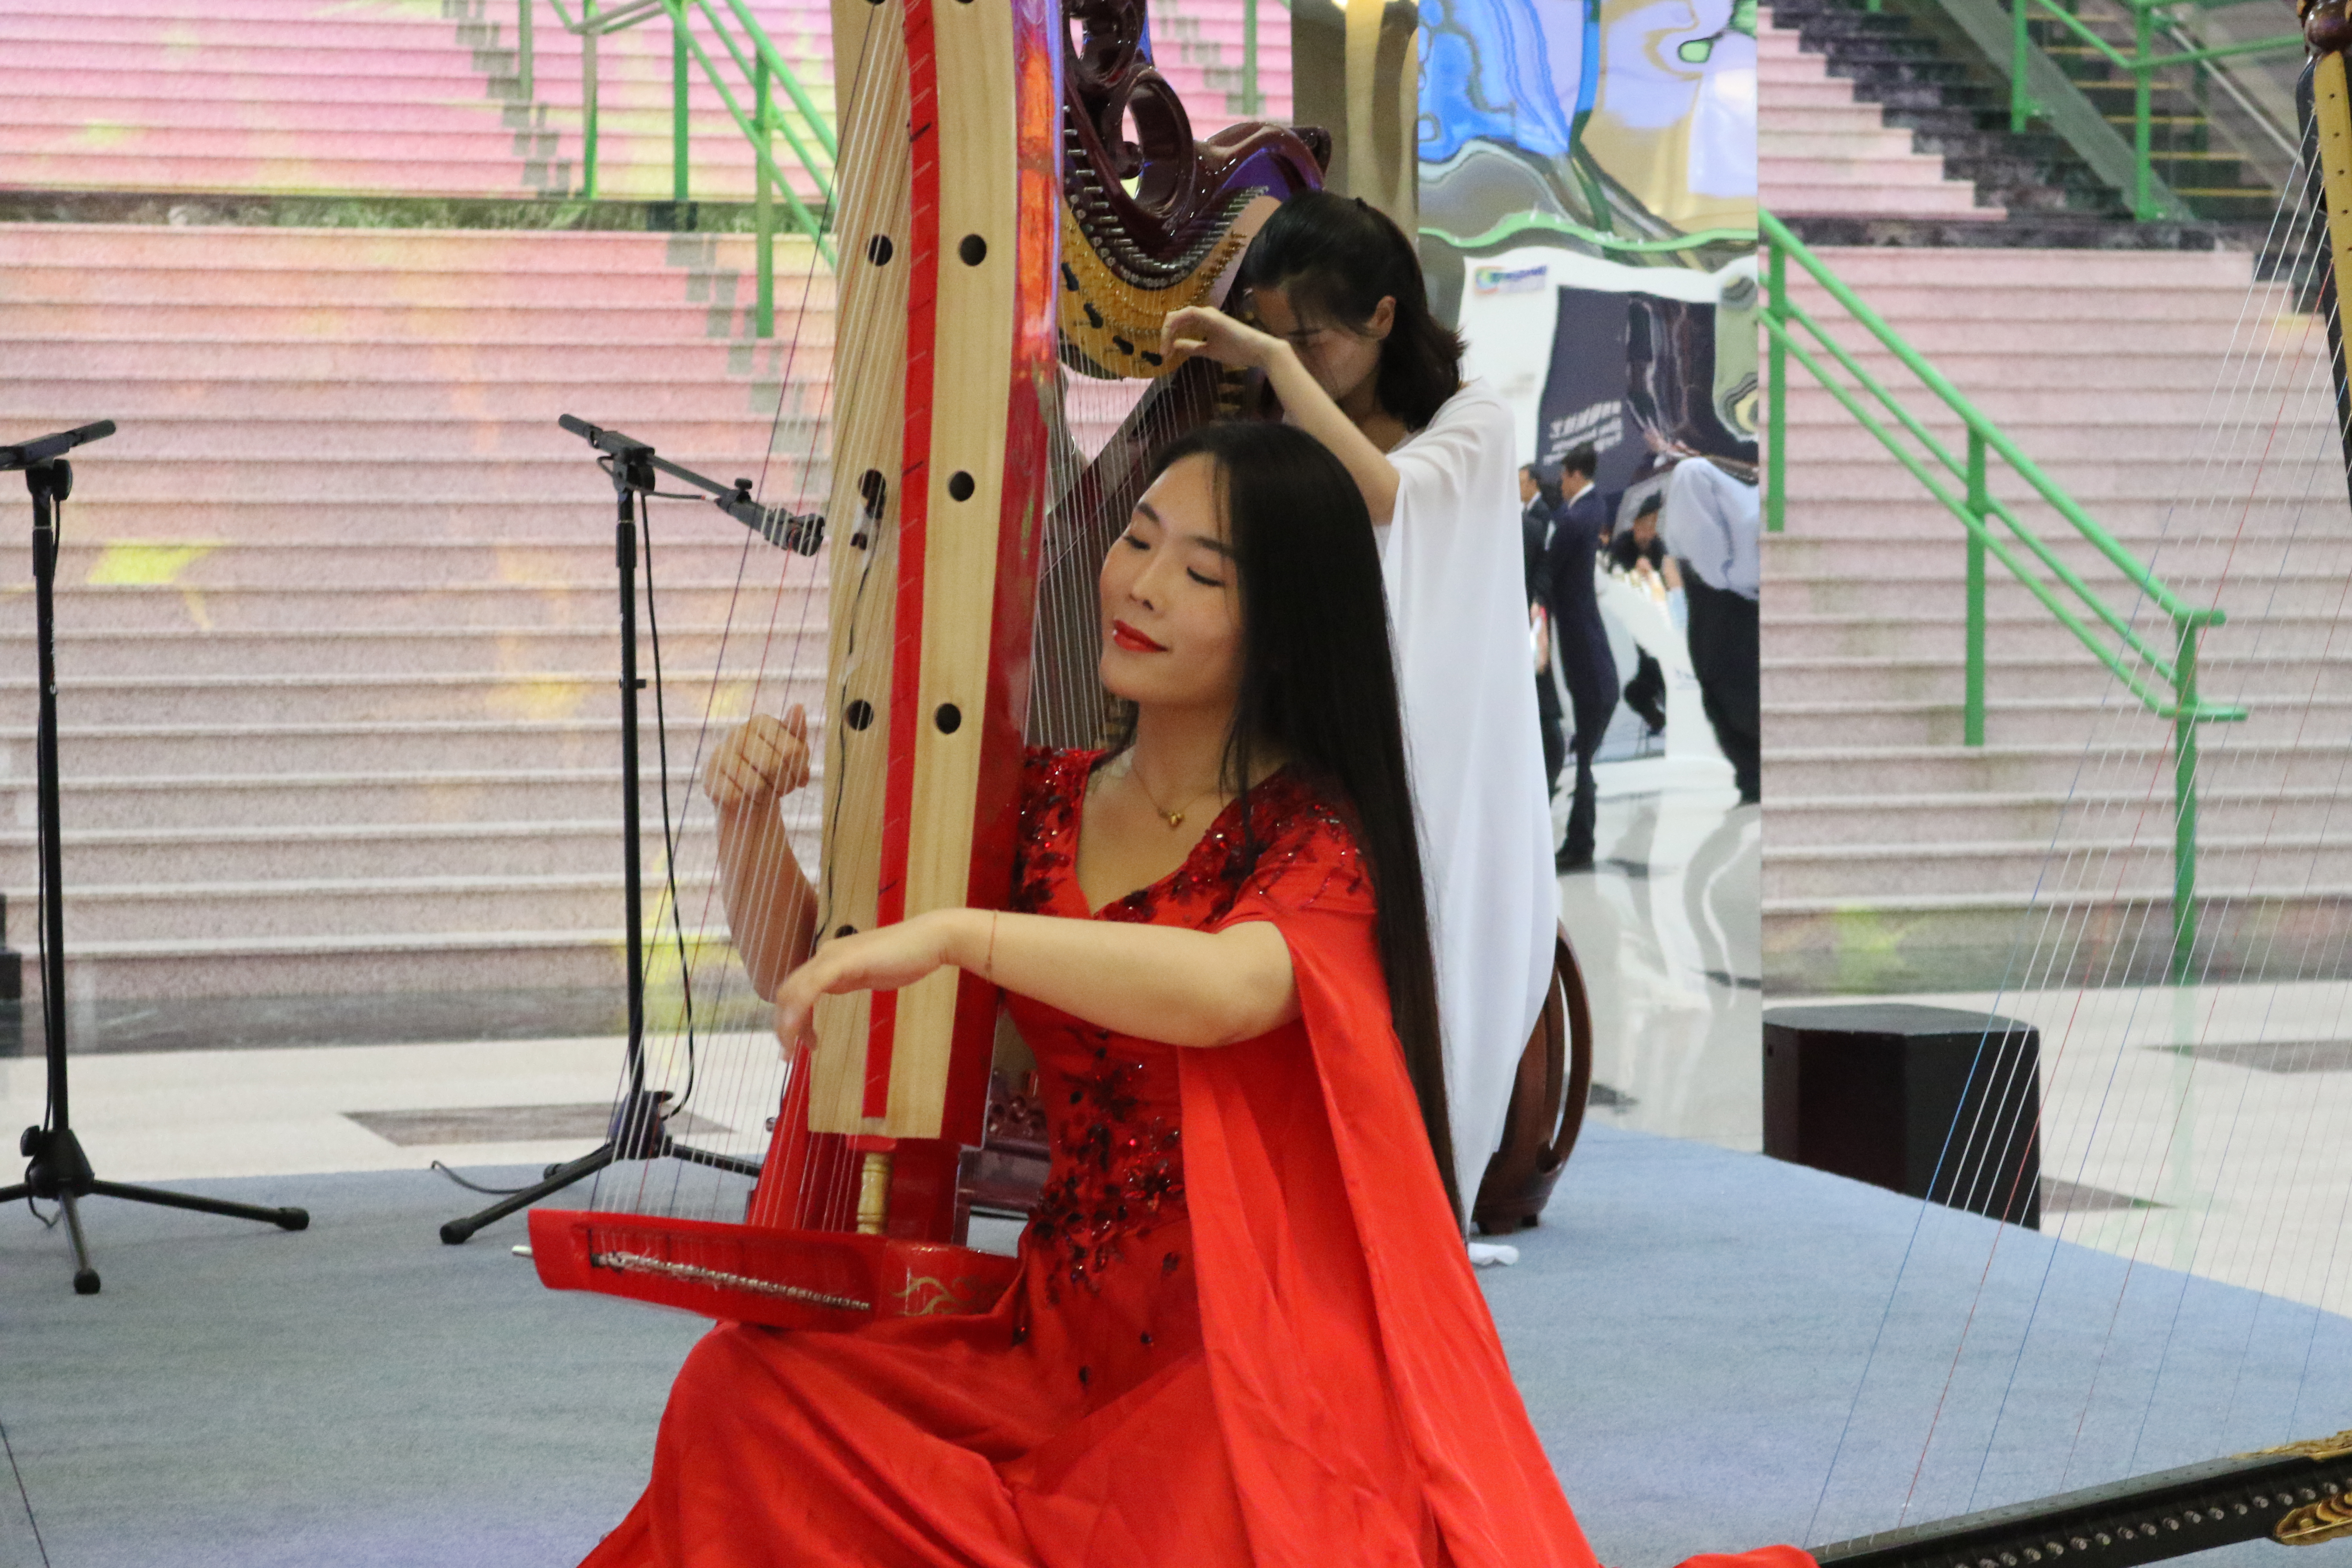 Harp Player at the International Mayors' Forum